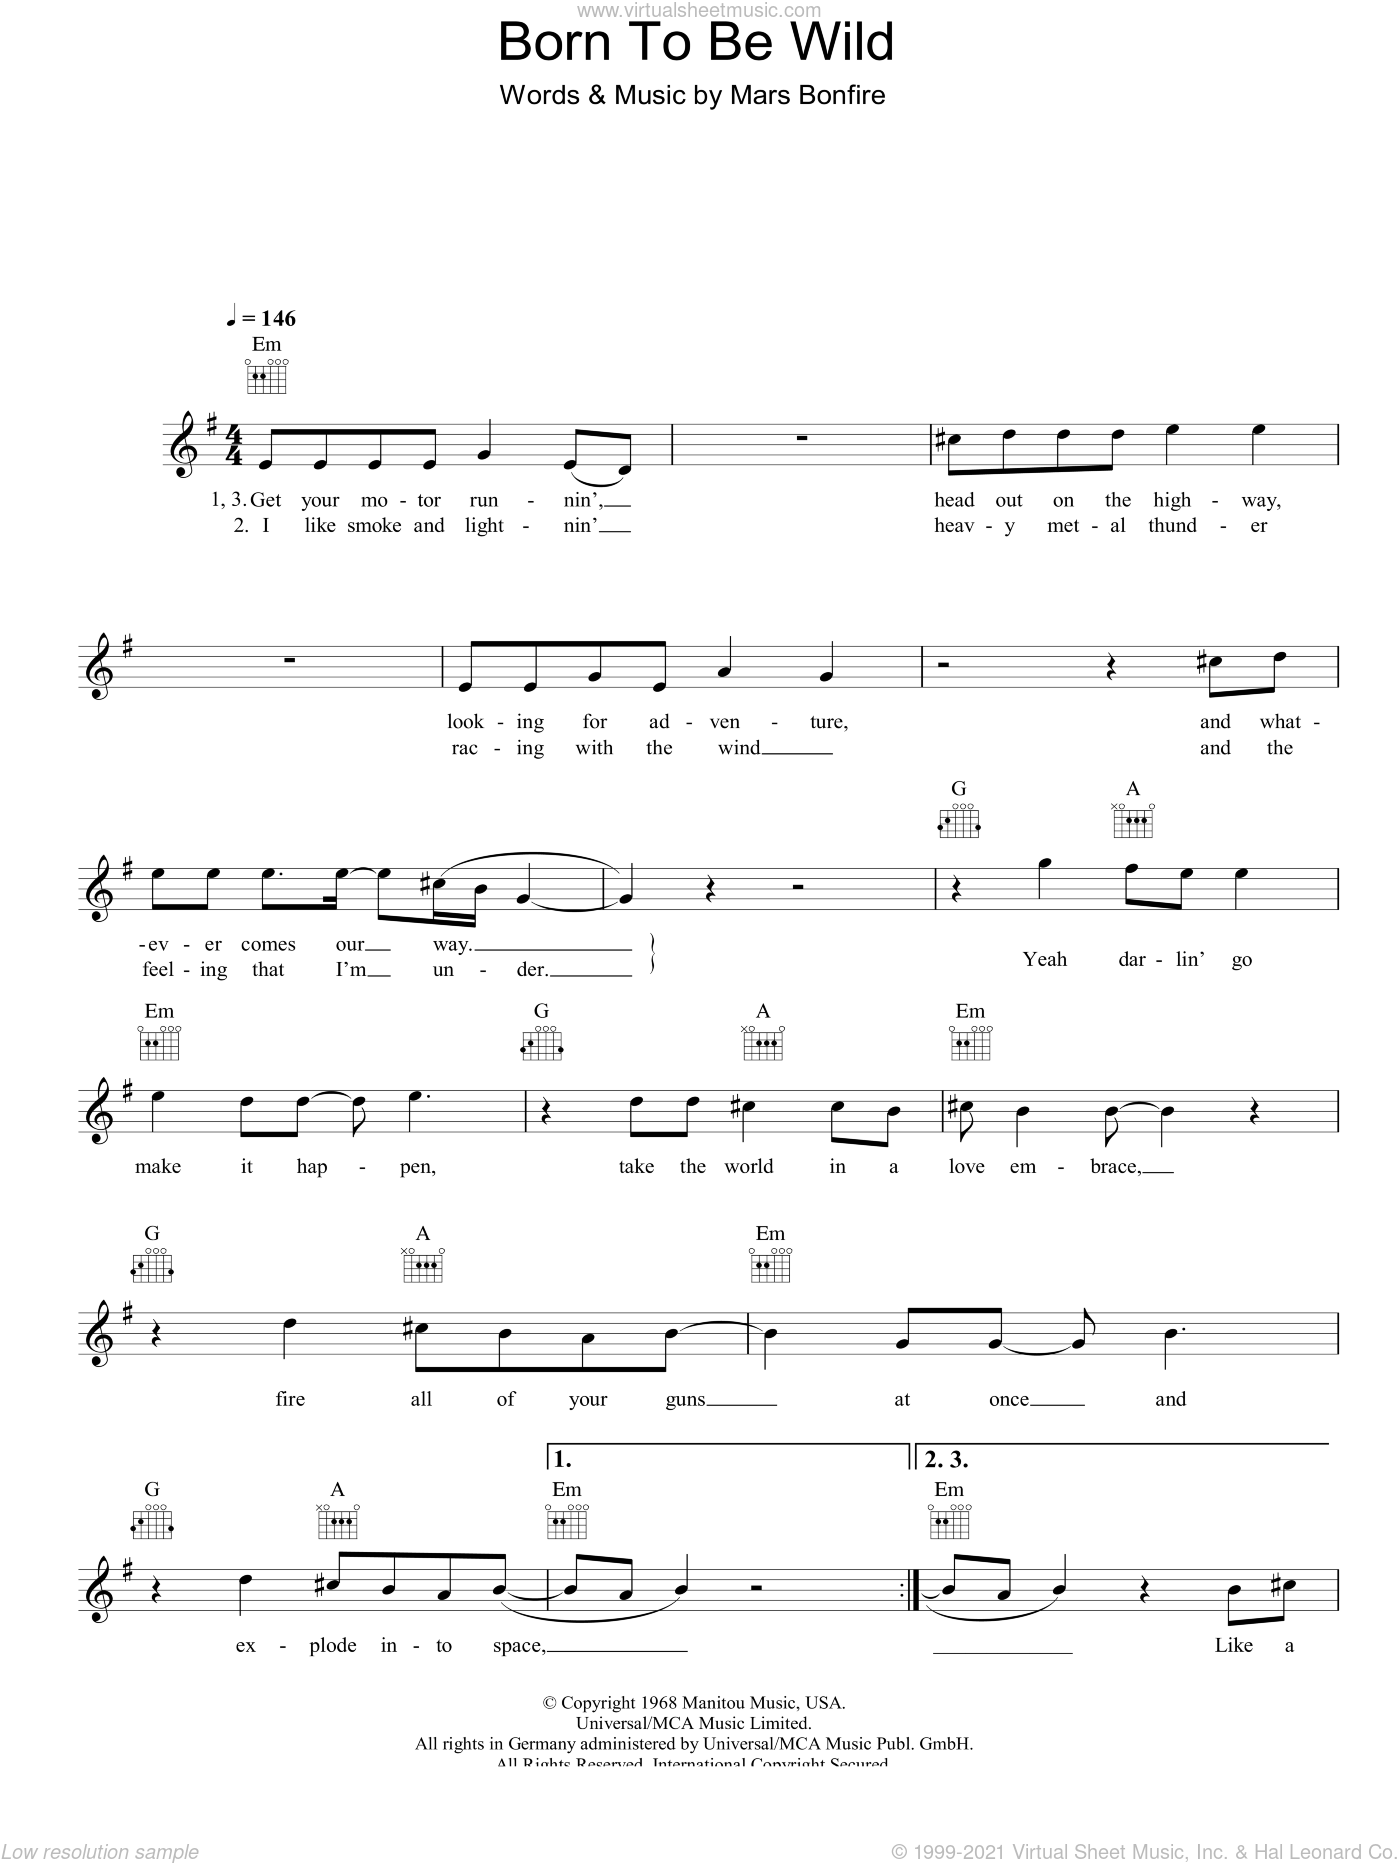 Born To Be Wild sheet music for voice and other instruments (fake book) by Mars Bonfire